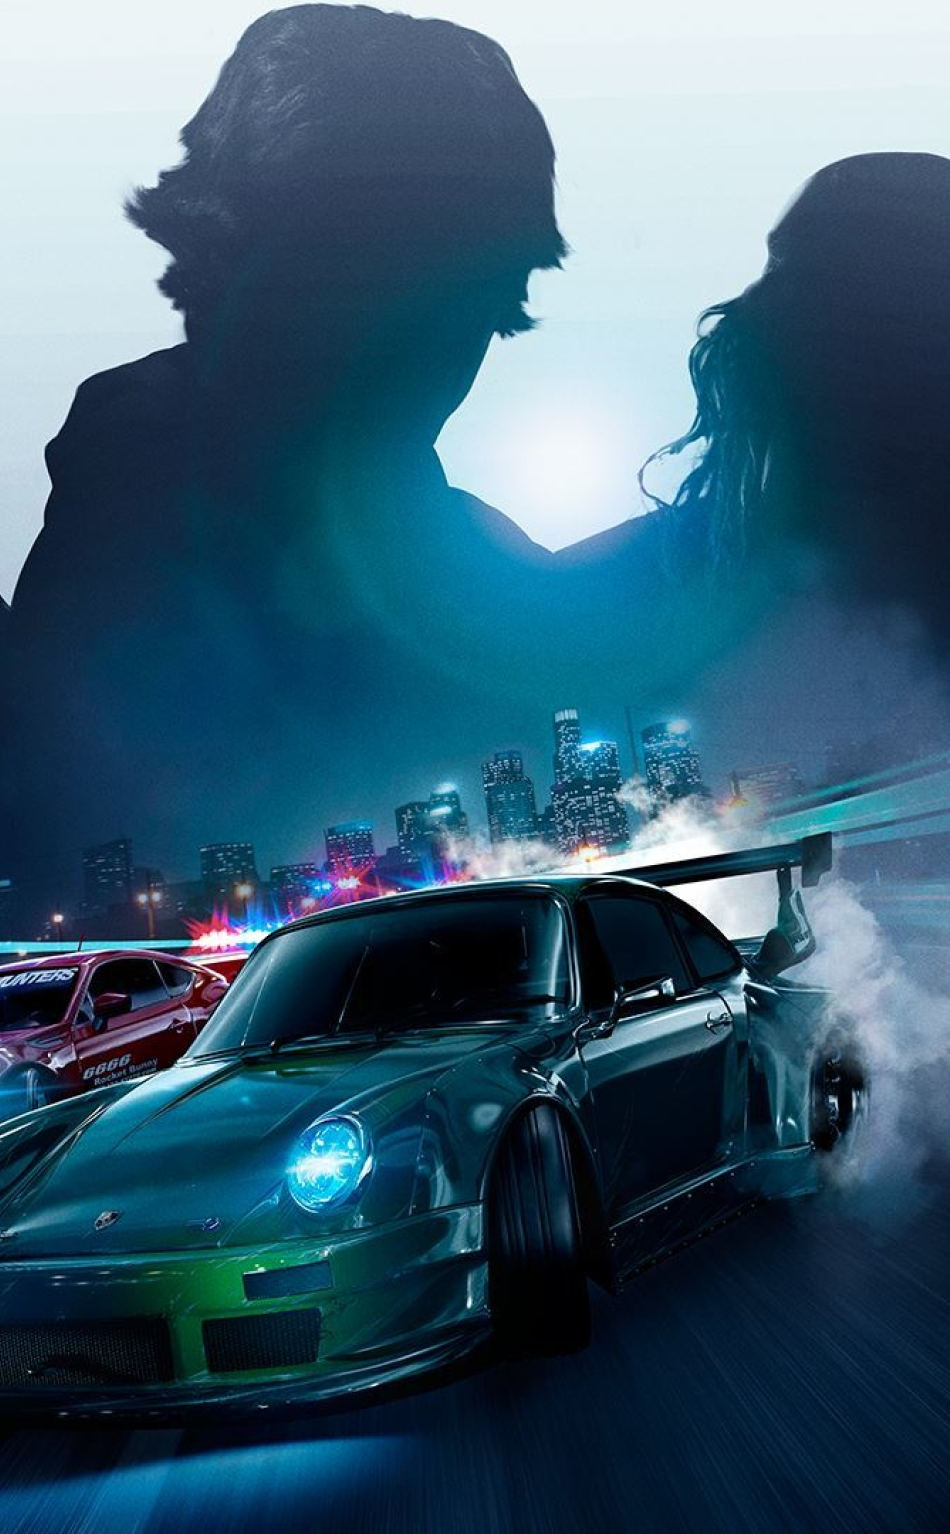 950x1534 Need For Speed Porsche Art 950x1534 Resolution Wallpaper Hd Games 4k Wallpapers Images Photos And Background